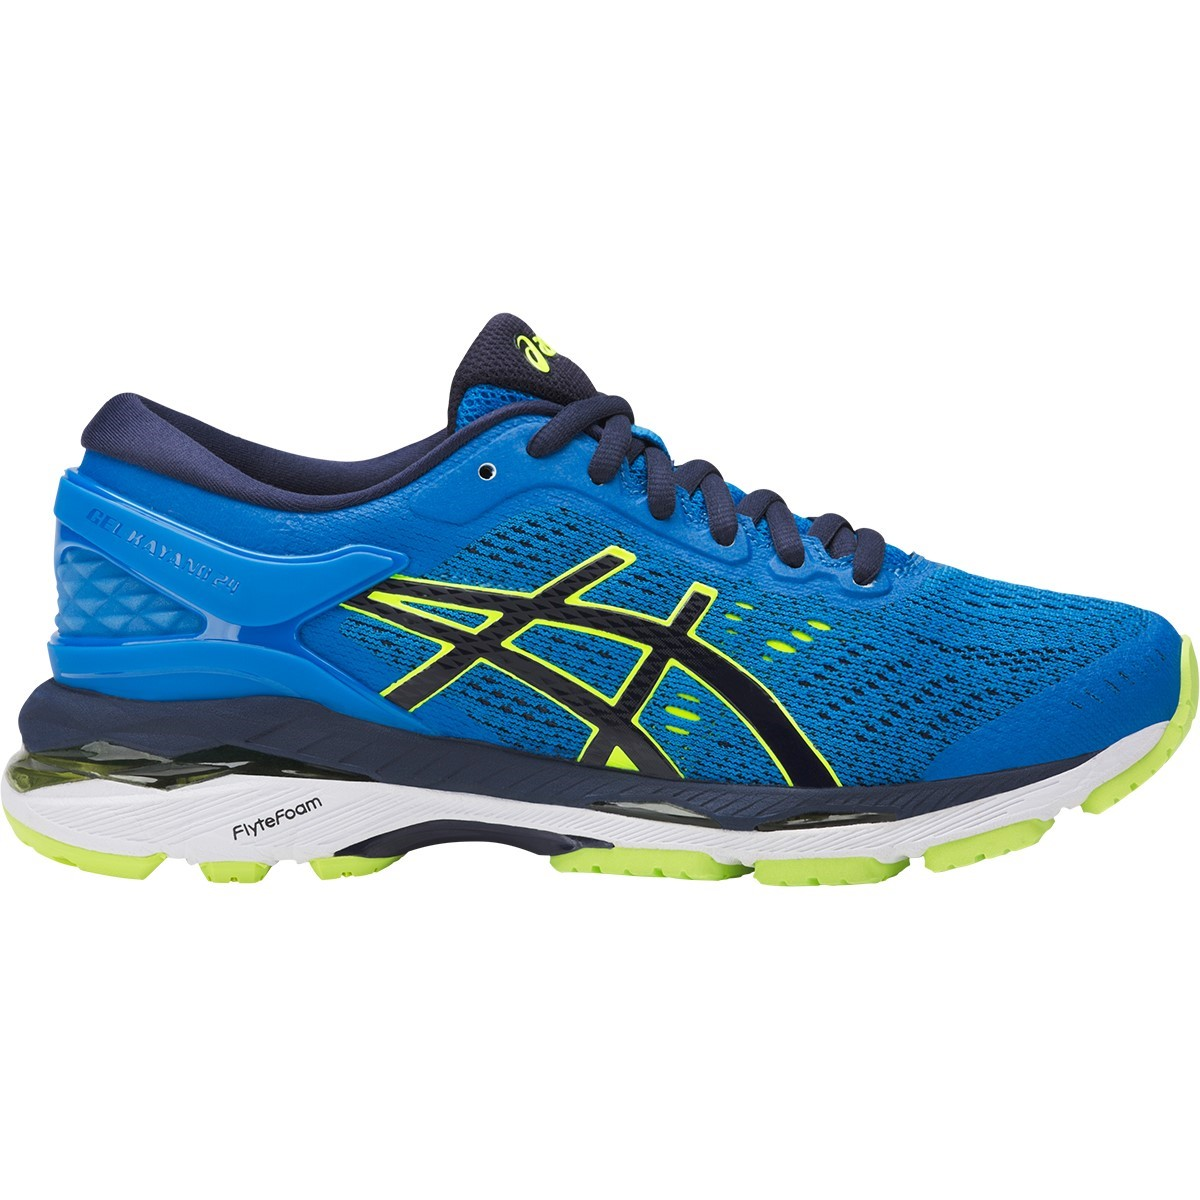 Discount Asics Kayano Running Shoes